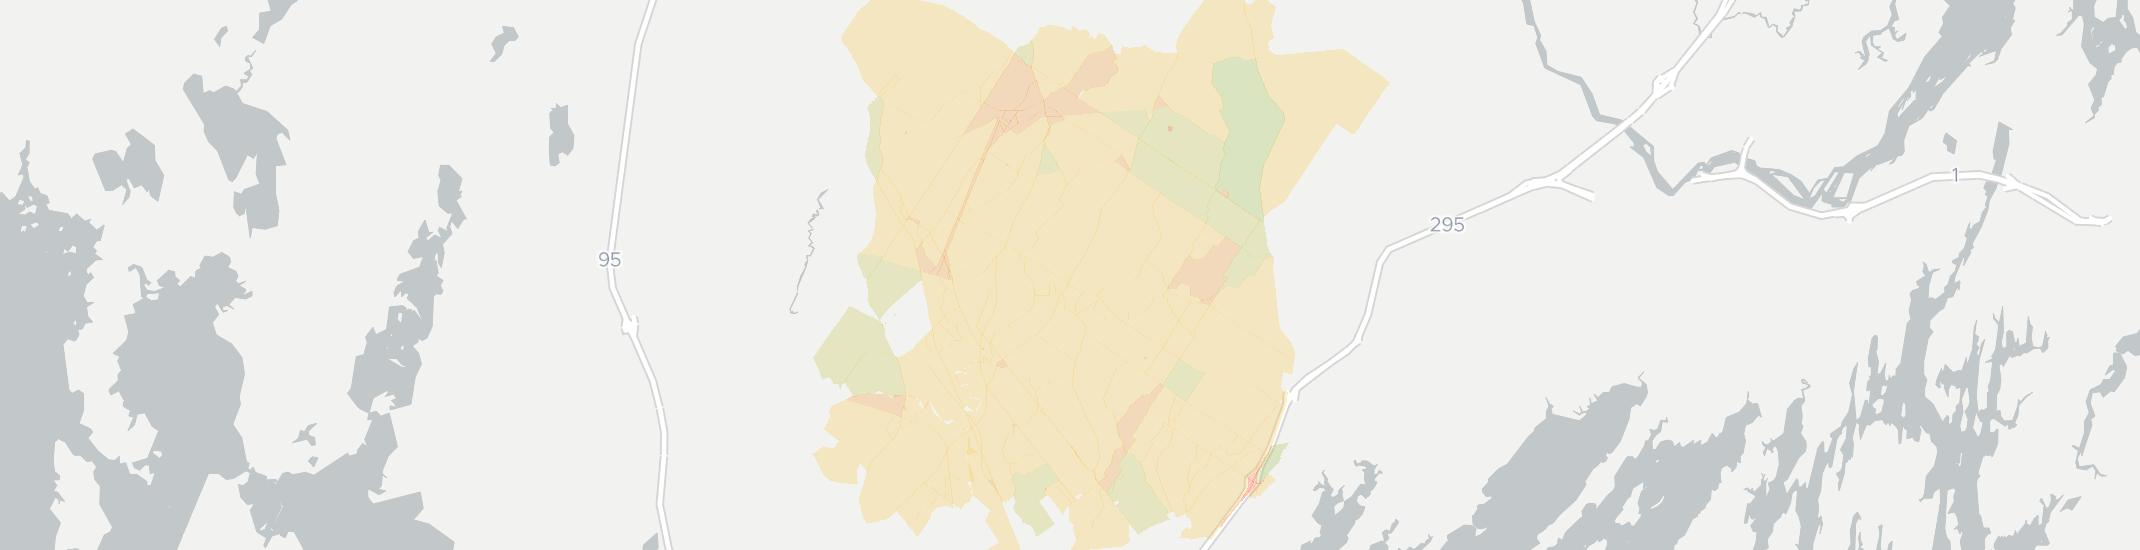 Pownal Internet Competition Map. Click for interactive map.